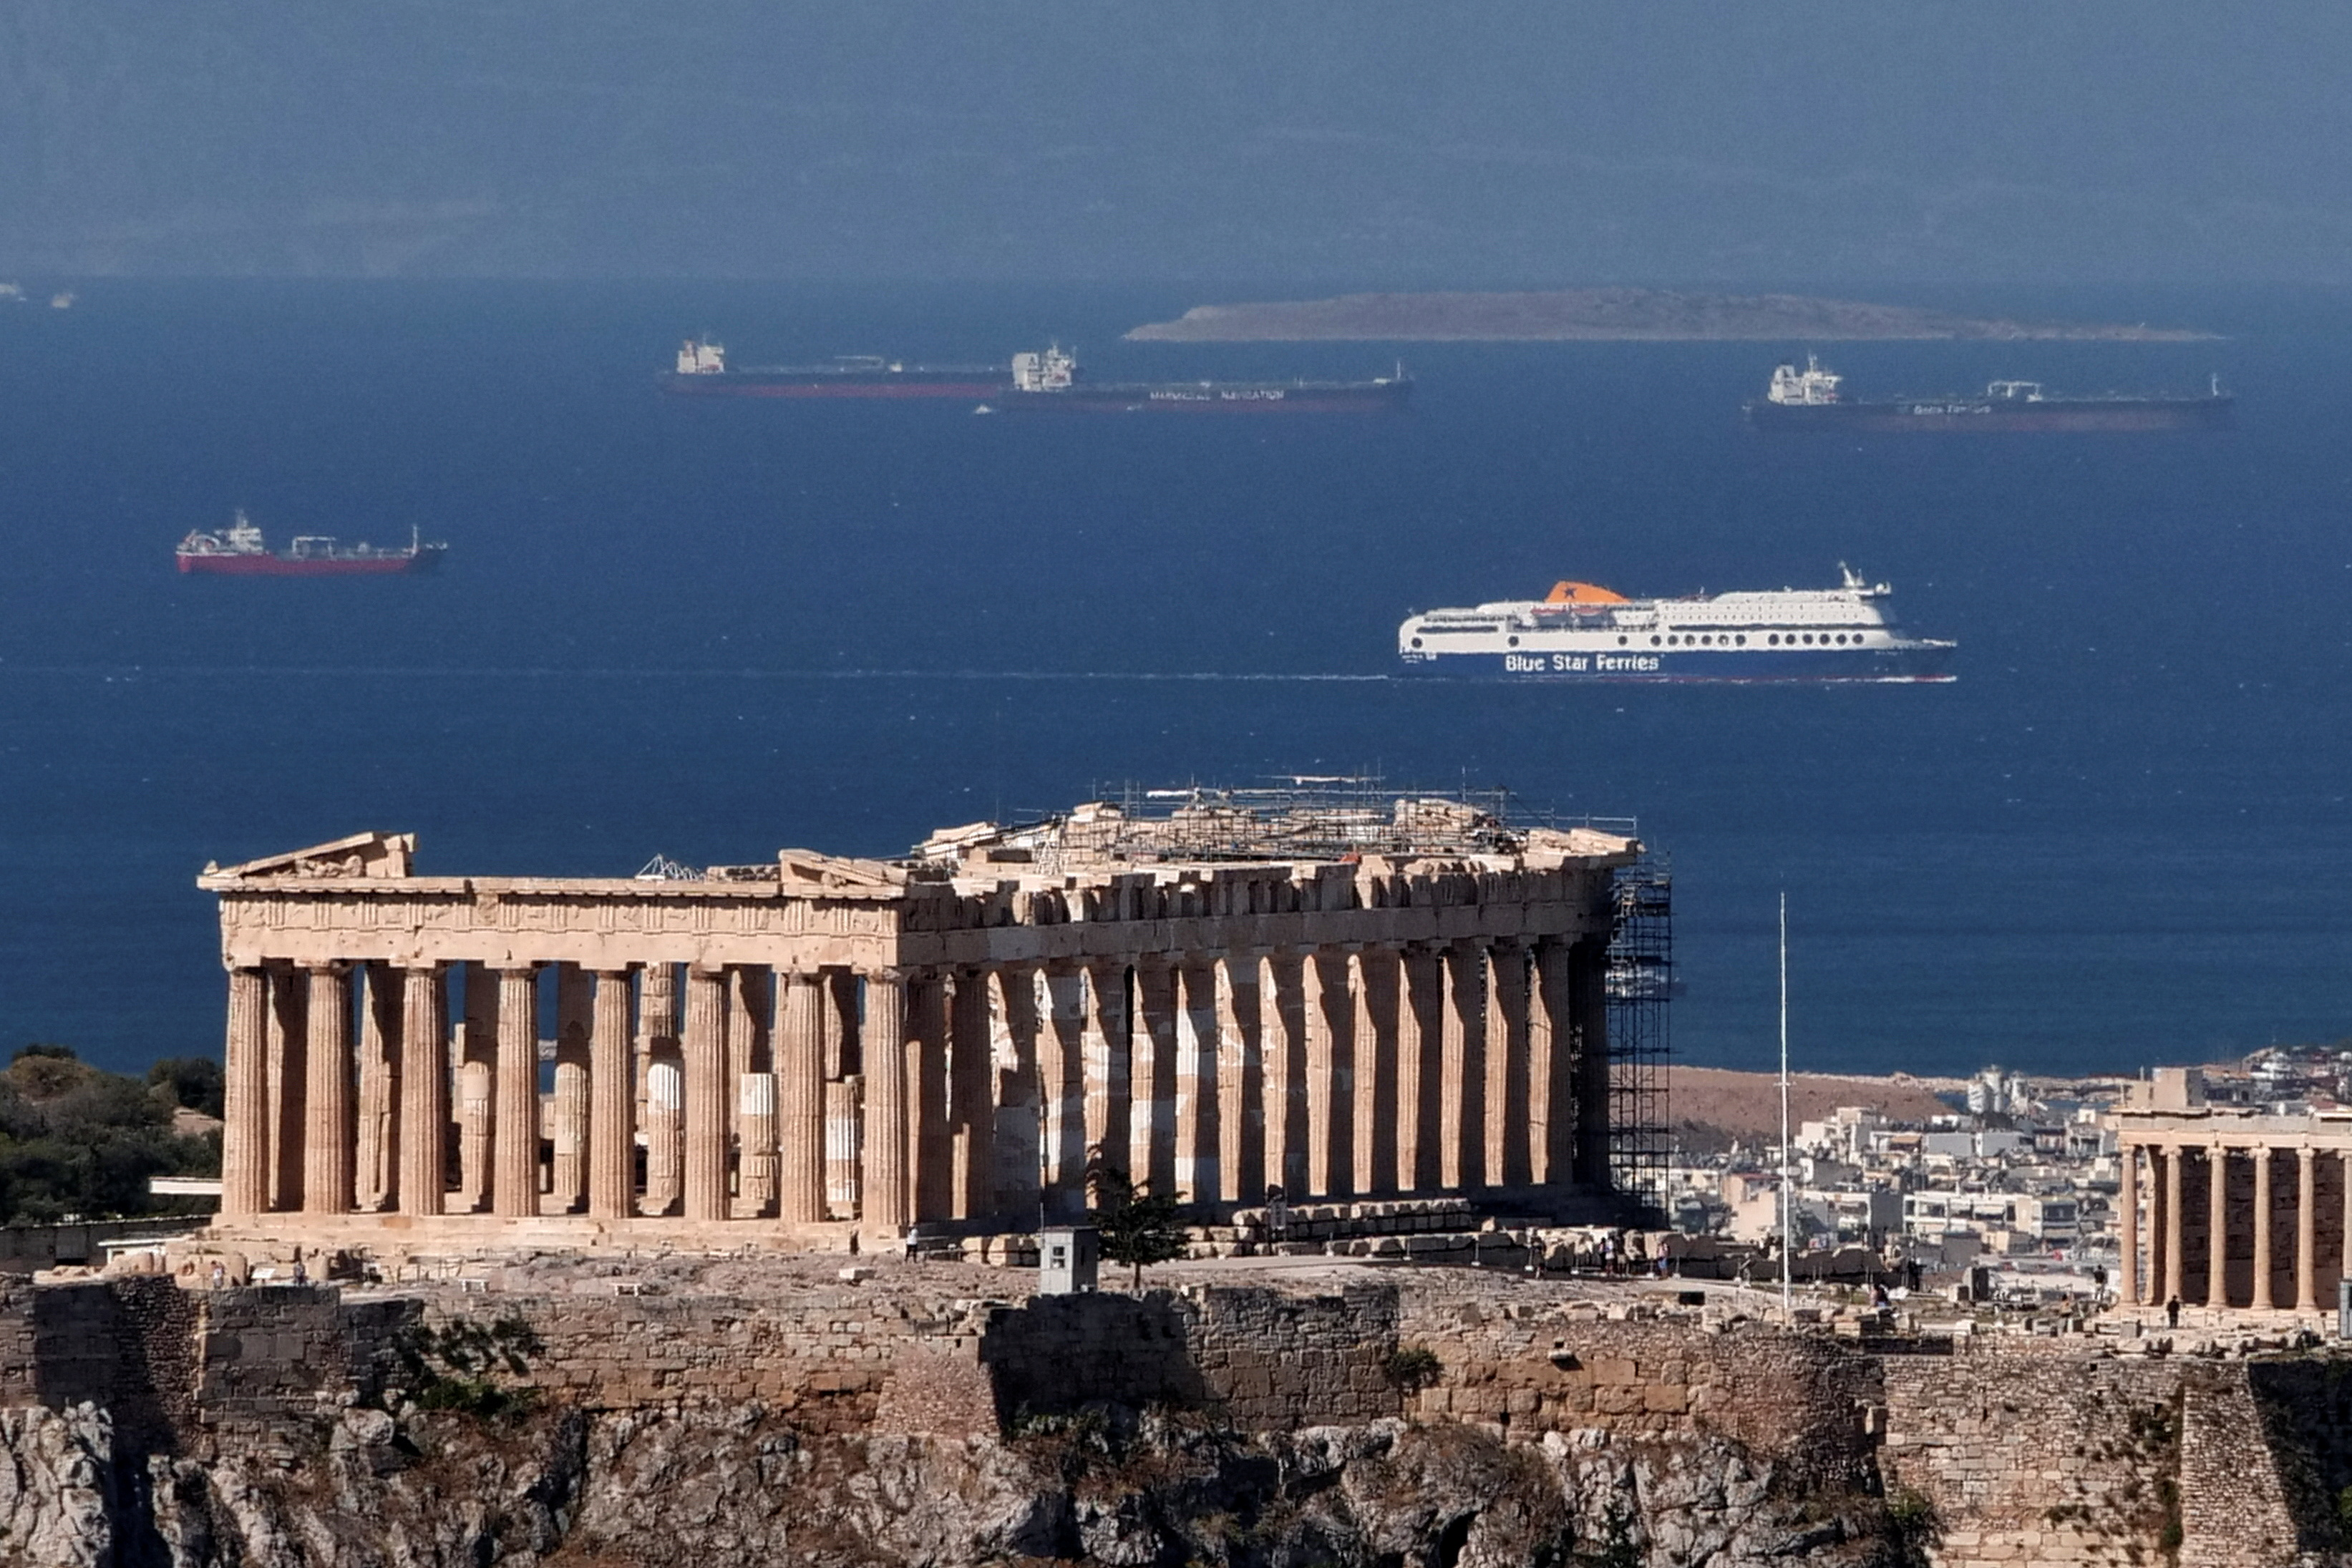 A view of the Parthenon temple atop the Acropolis hill as a passenger ferry sails in the background, a day before the official opening of the tourist season, in Athens, Greece, May 14, 2021. REUTERS/Vassilis Triandafyllou